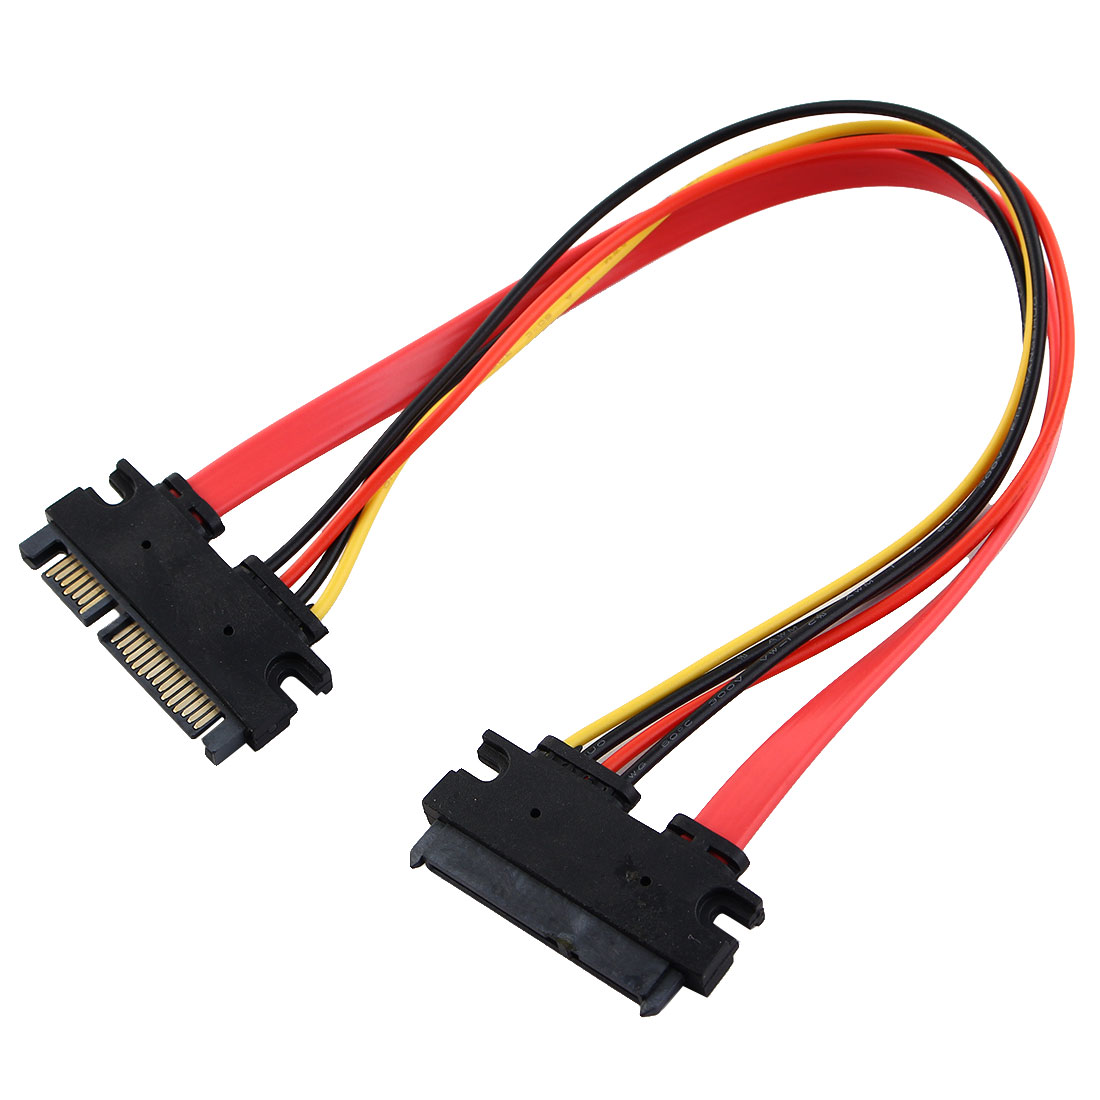 15 Pin + 7 Pin Serial ATA SATA Male to Female Power Cable